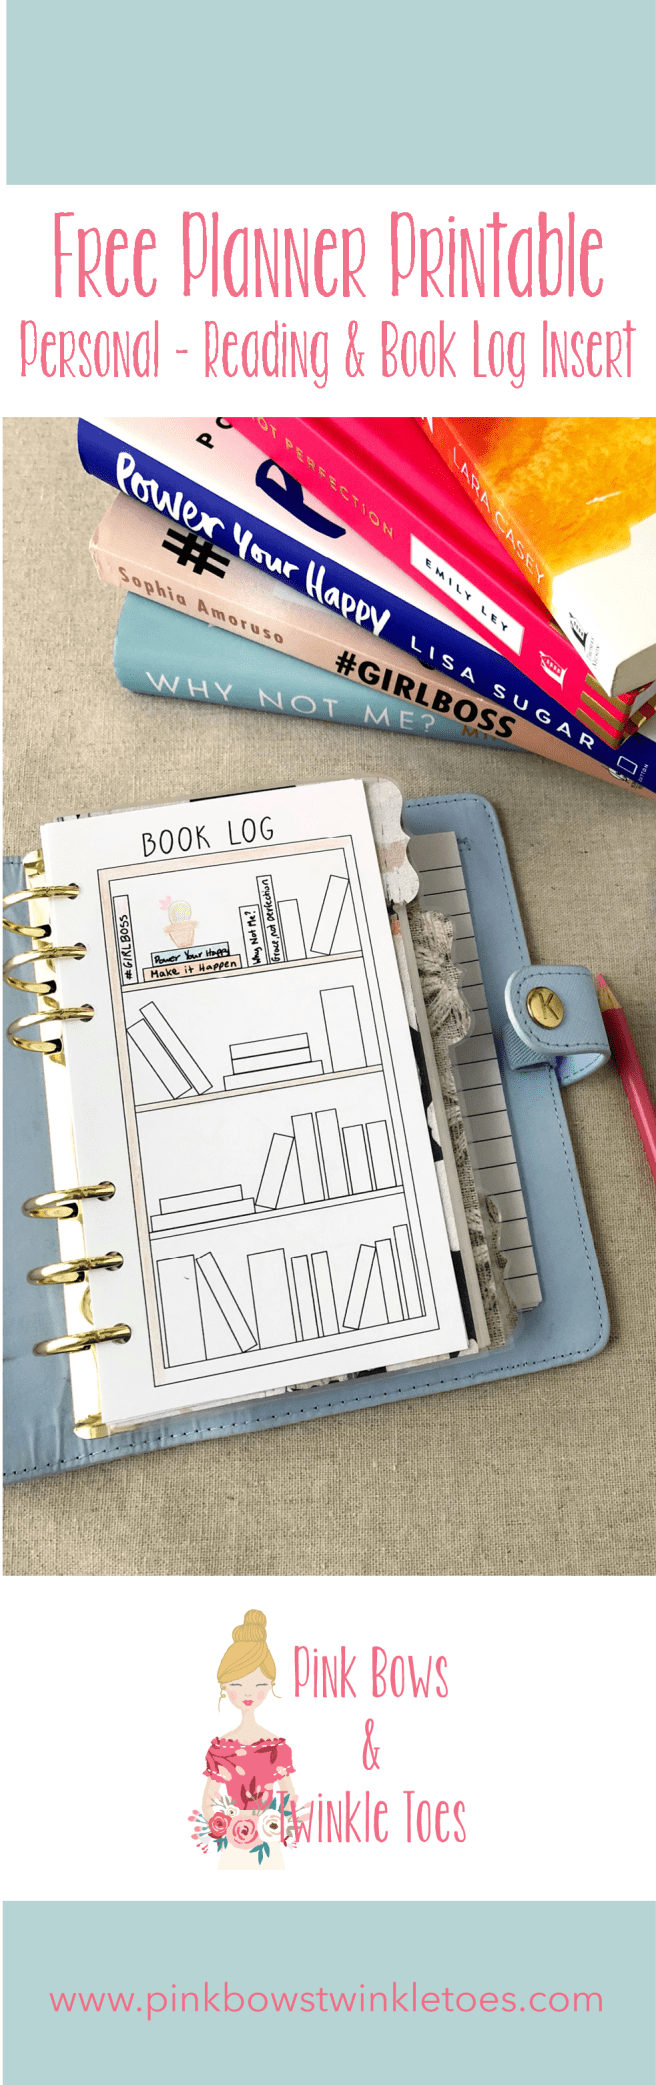 Reading & Book Log: Free Personal Size Planner Printable - Pink Bows & Twinkle Toes